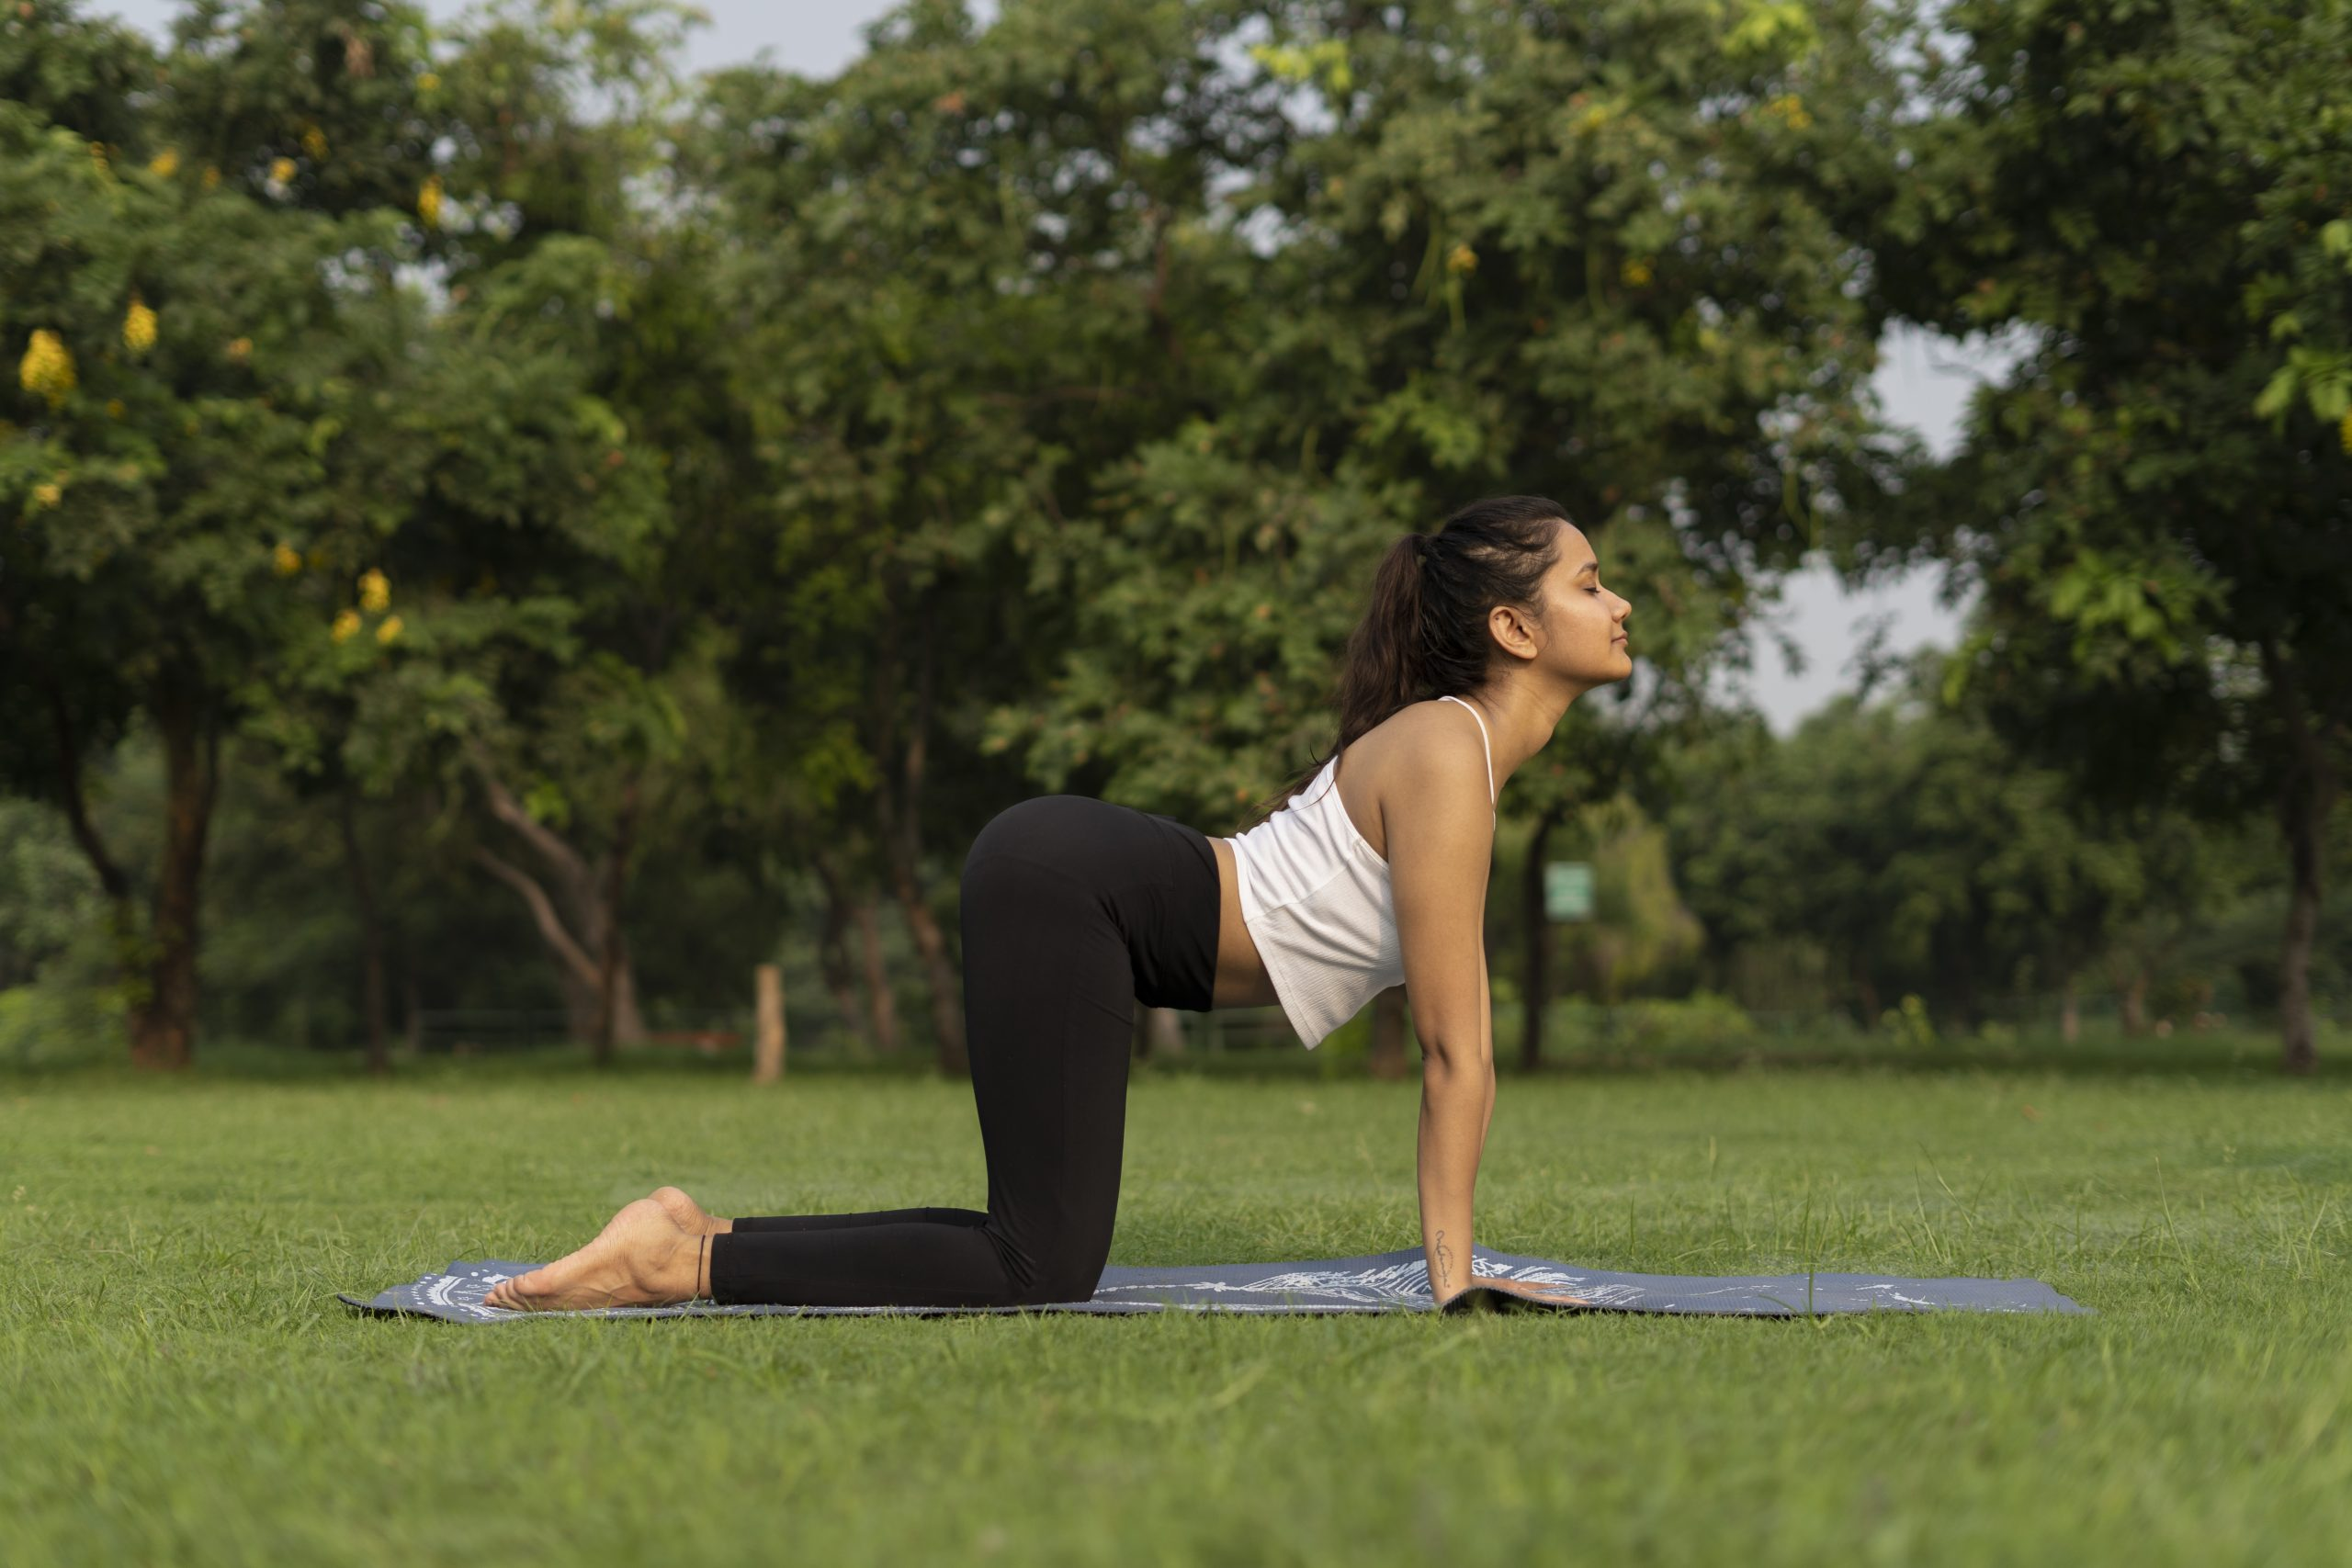 Girl Doing Cow Pose in Yoga